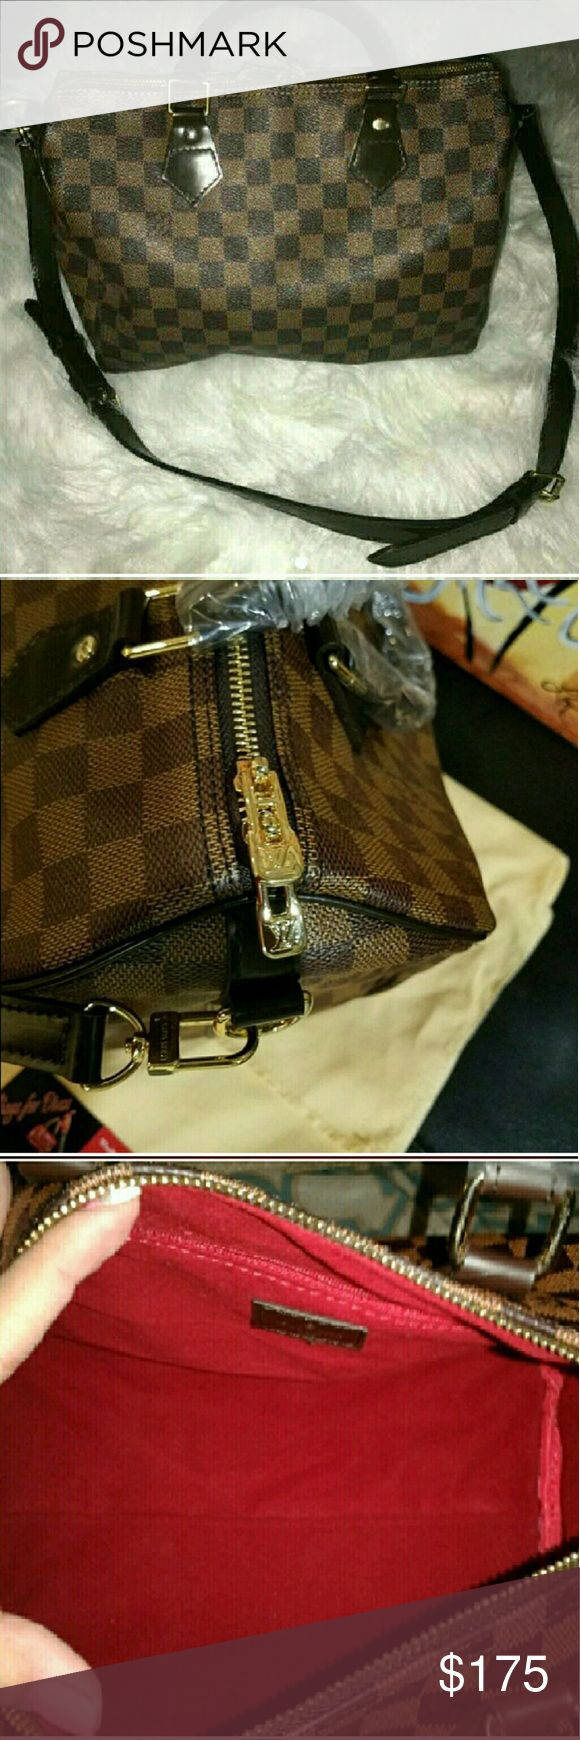 Checkered Satchel 💋BRAND NEW, LEATHER SPEEDY BANDOULIERE SATCHEL SIZE 30💋GREAT QUALITY LEATHER, WITH  STRAP, KEY AND LOCK.*NO DUSTBAG*  *GET THE LOOK WITH OUT PAYING THE PRICE*  ❎UNBRANDED❎  ❌🚫THIS IS NOT THE REAL DEAL LADIES!! PLEASE NO QUESTIONS REGARDING AUTH. I WILL NOT ANSWER!!! PRICE IS SO OBVIOUS!🚫❌  ☞SOLD AS IS☜   ❌NO TRADES❌NO RUDE COMMENTS❌ Louis Vuitton Bags Satchels